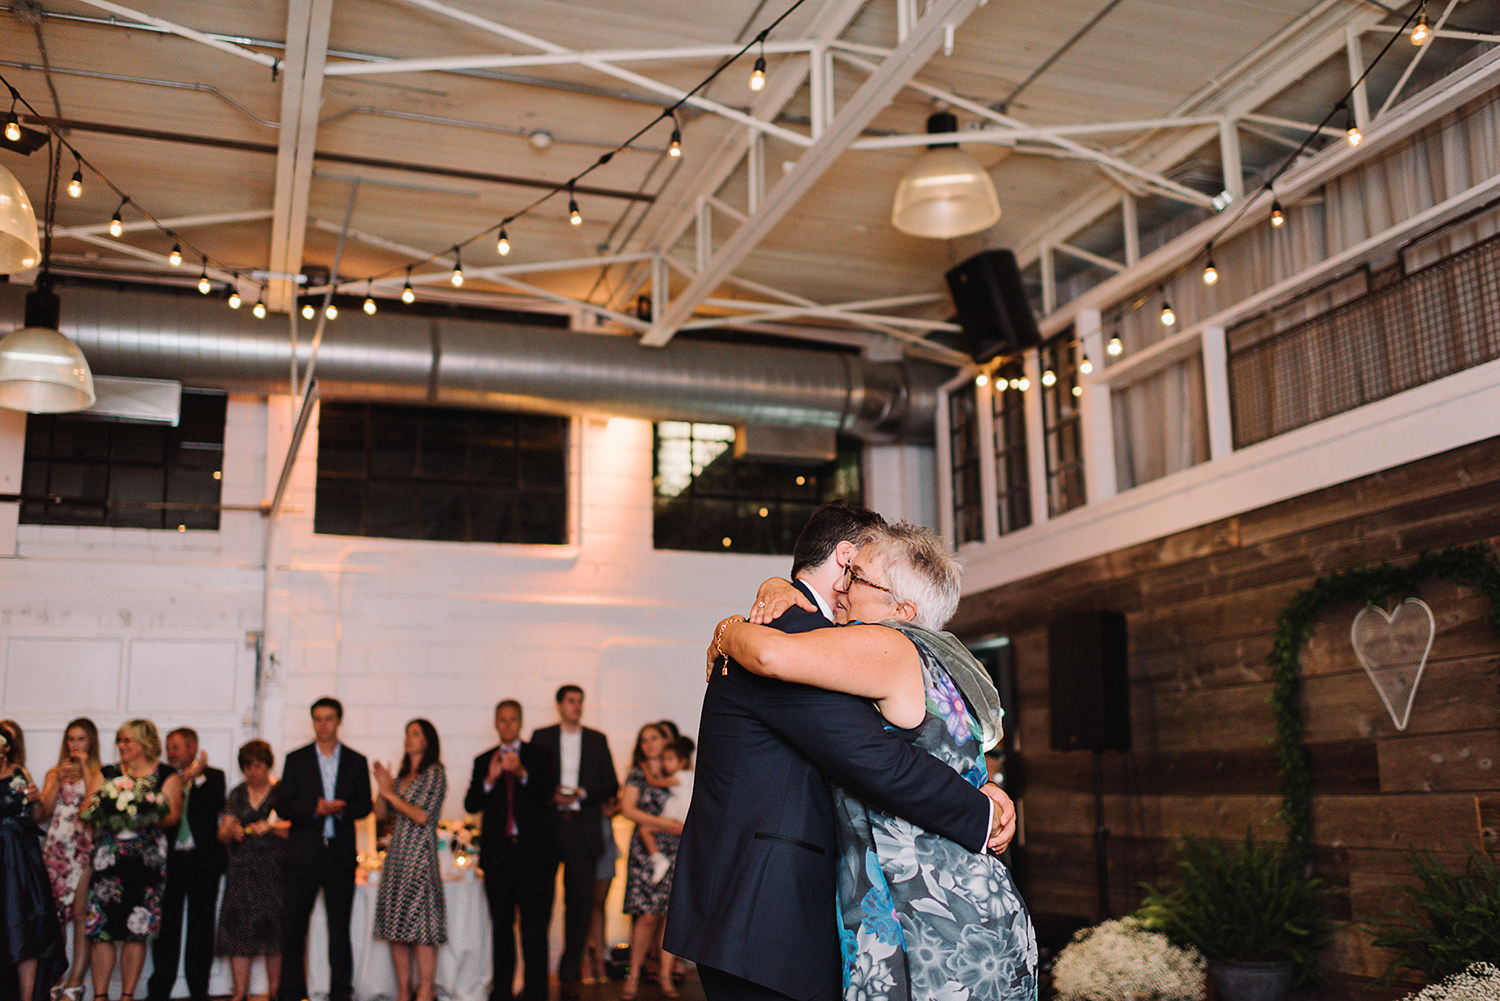 torontos-best-wedding-photographers-ryanne-hollies-photography-photojournalism-artistic-moody-toronto-airship37-graffiti-editorial-reception-mother-son-dance-with-groom-so-cute-hugging.jpg